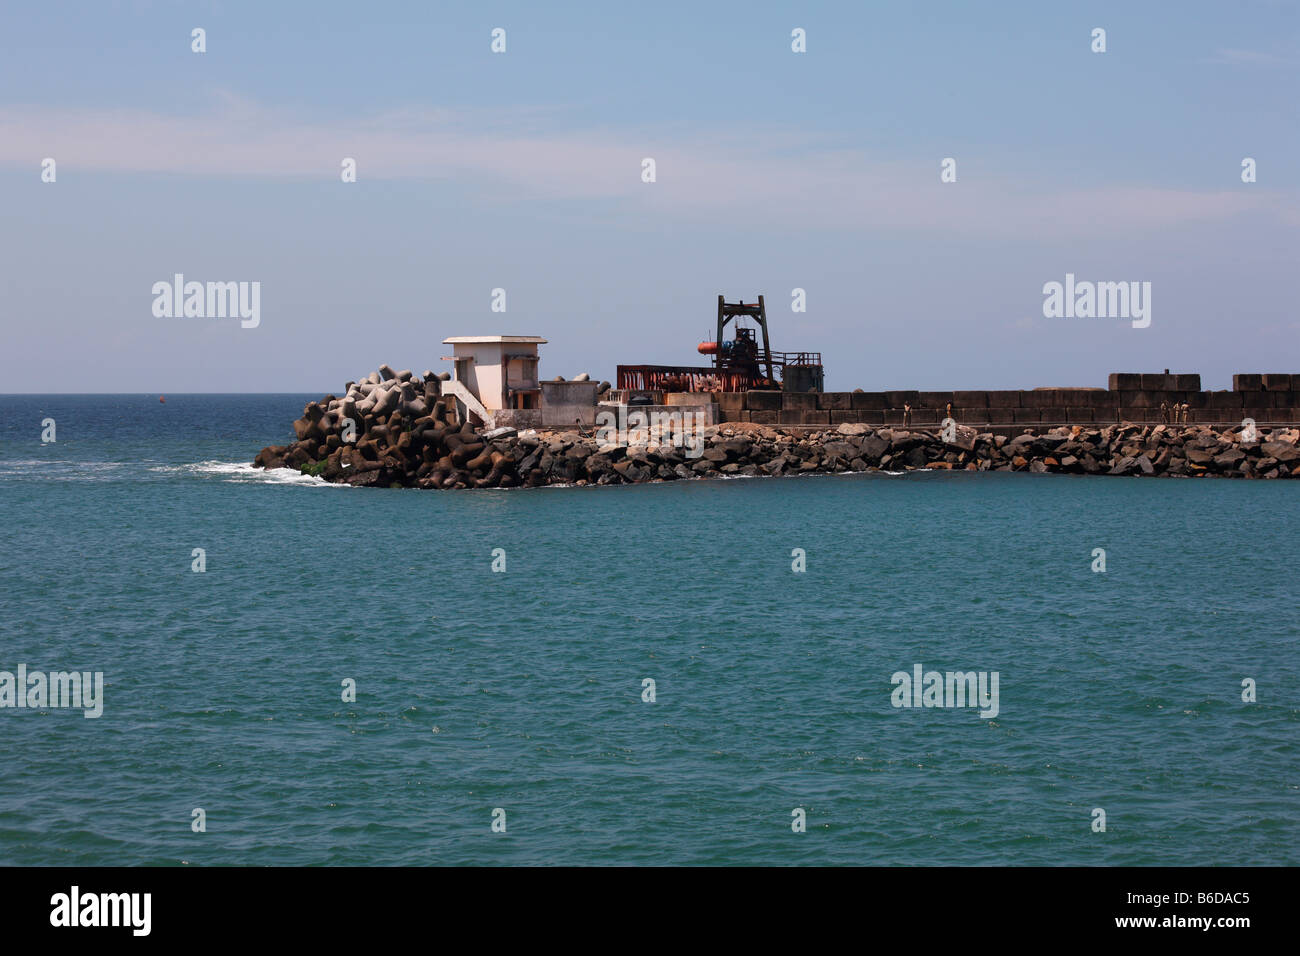 Wave energy station in Vizhinjam,Kerala,India - Stock Image